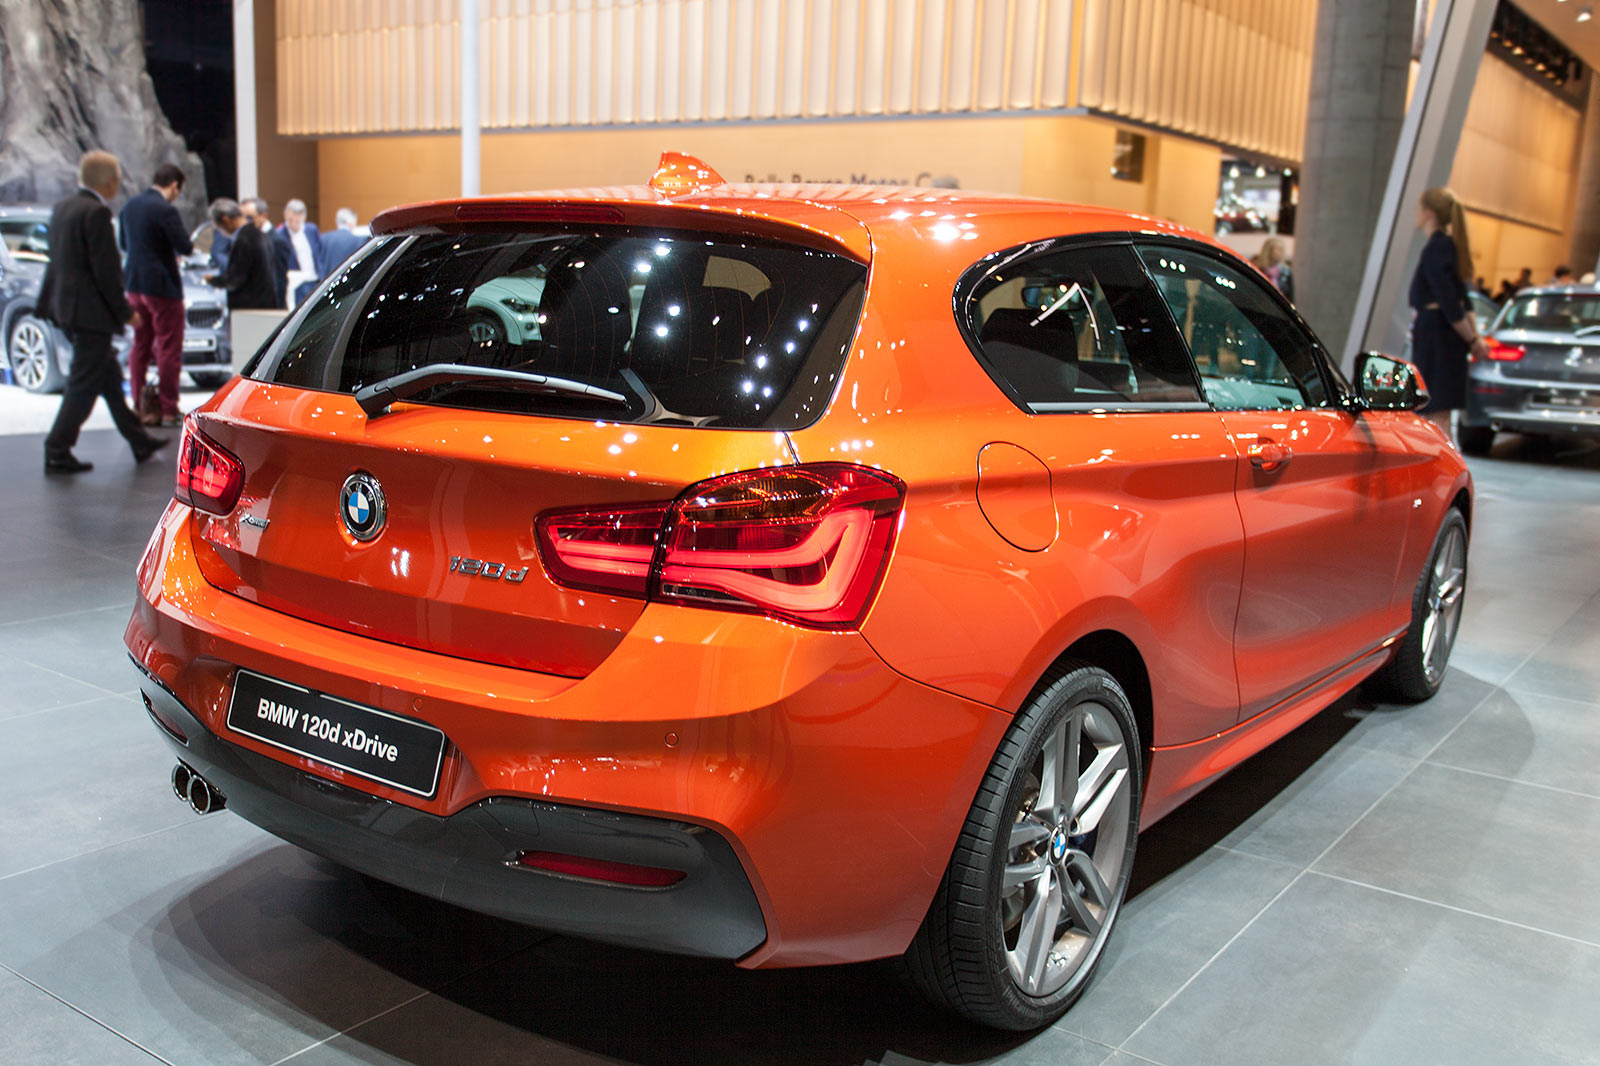 foto bmw 120d xdrive mit bmw m paket modell f21 facelift 2015 vergr ert. Black Bedroom Furniture Sets. Home Design Ideas